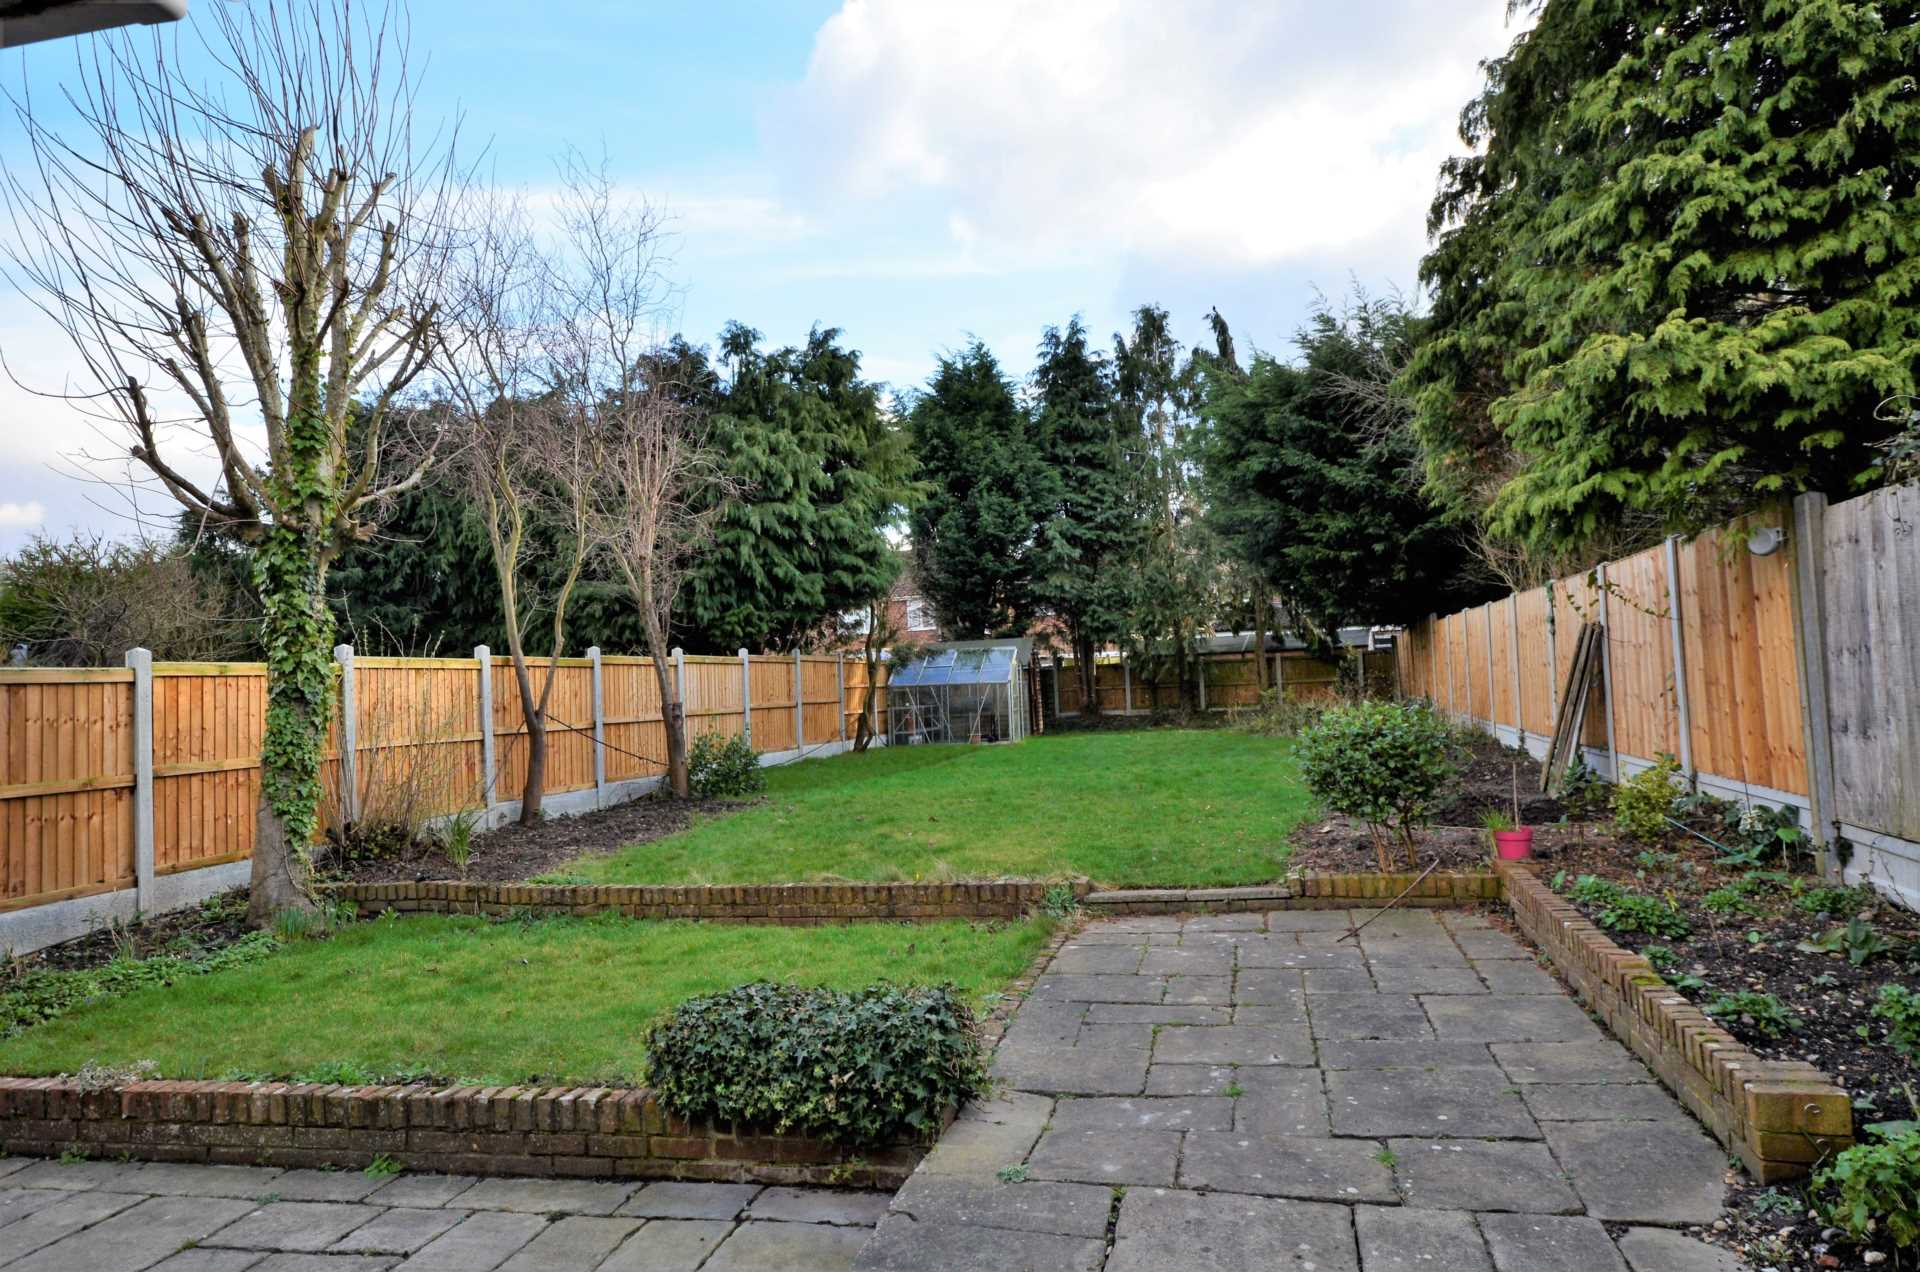 Perry Street, Billericay, Image 13